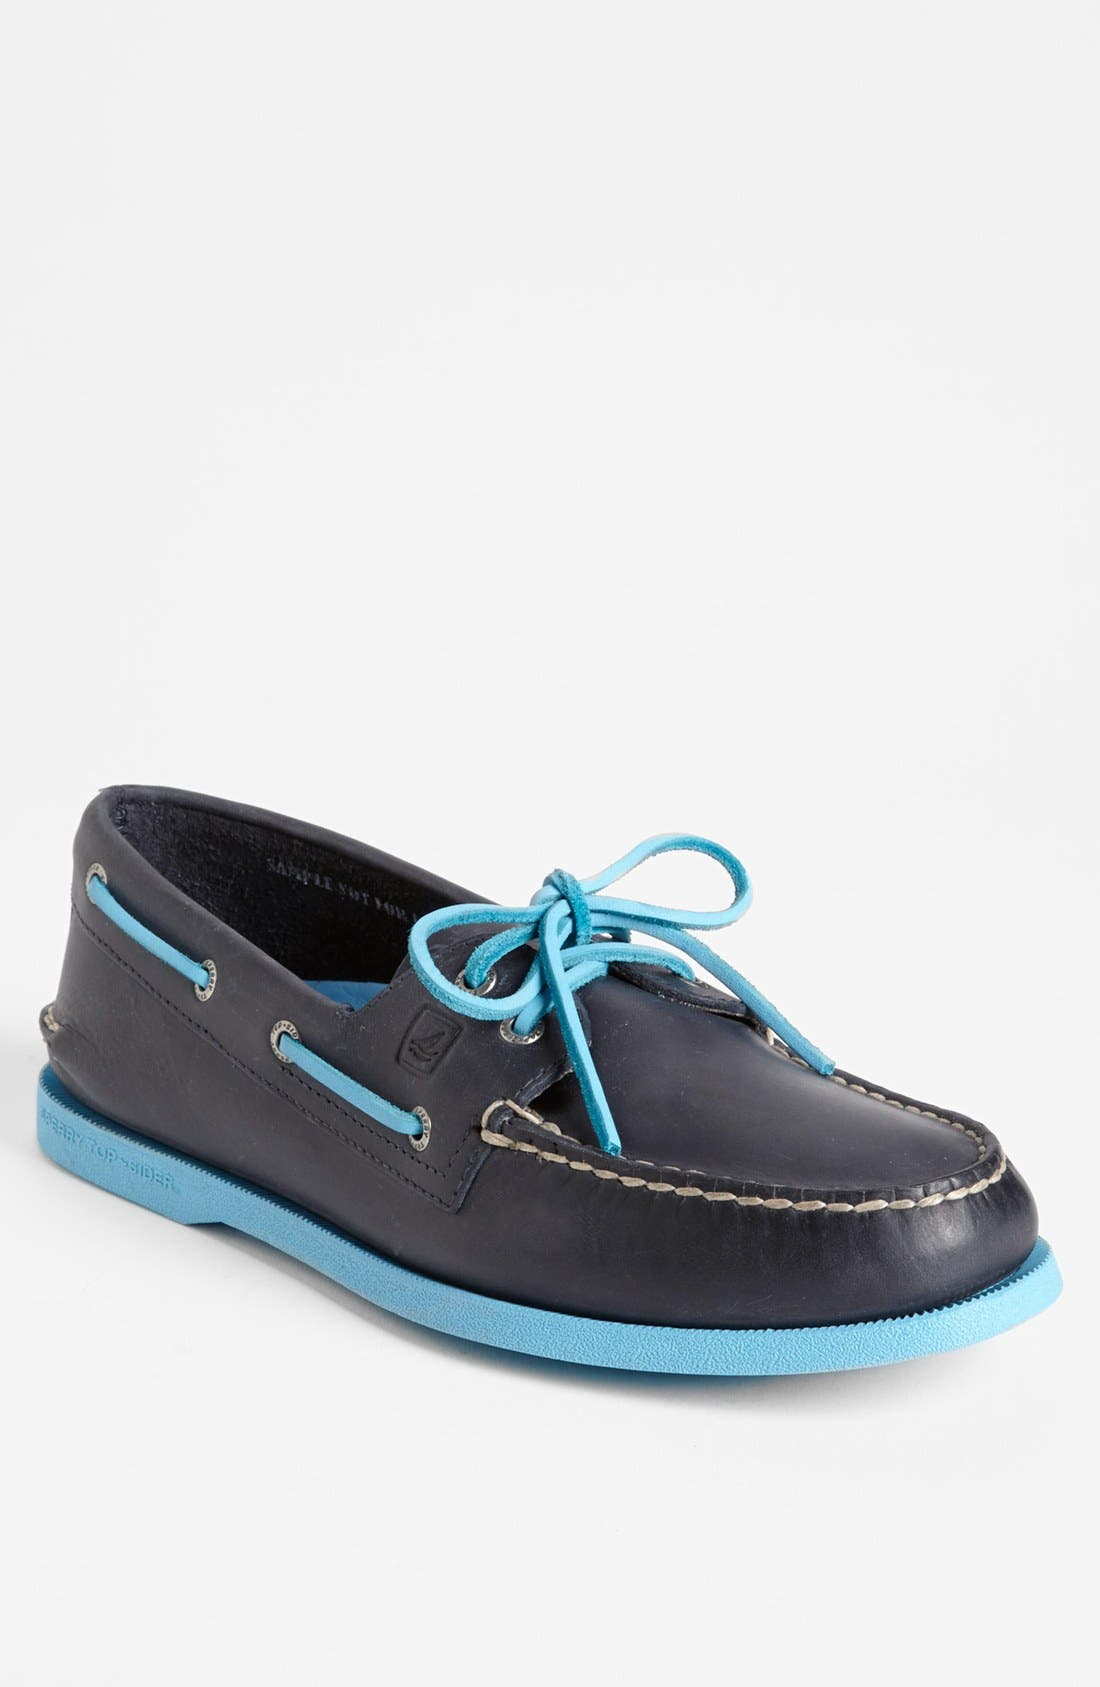 Alternate Image 1 Selected - Sperry Top-Sider® 'Authentic Original' Boat Shoe